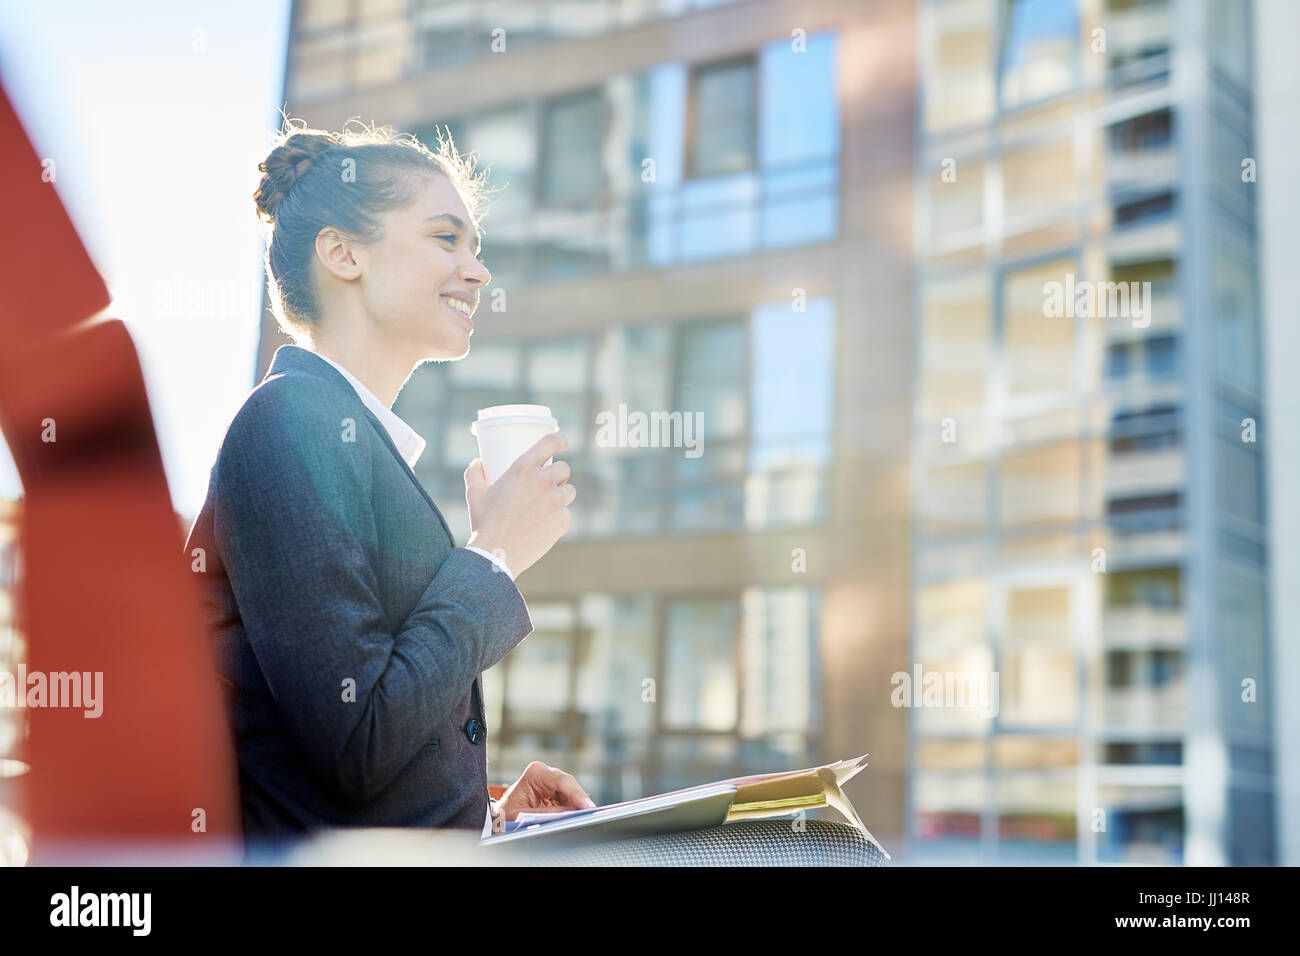 Businesswoman - Stock Image